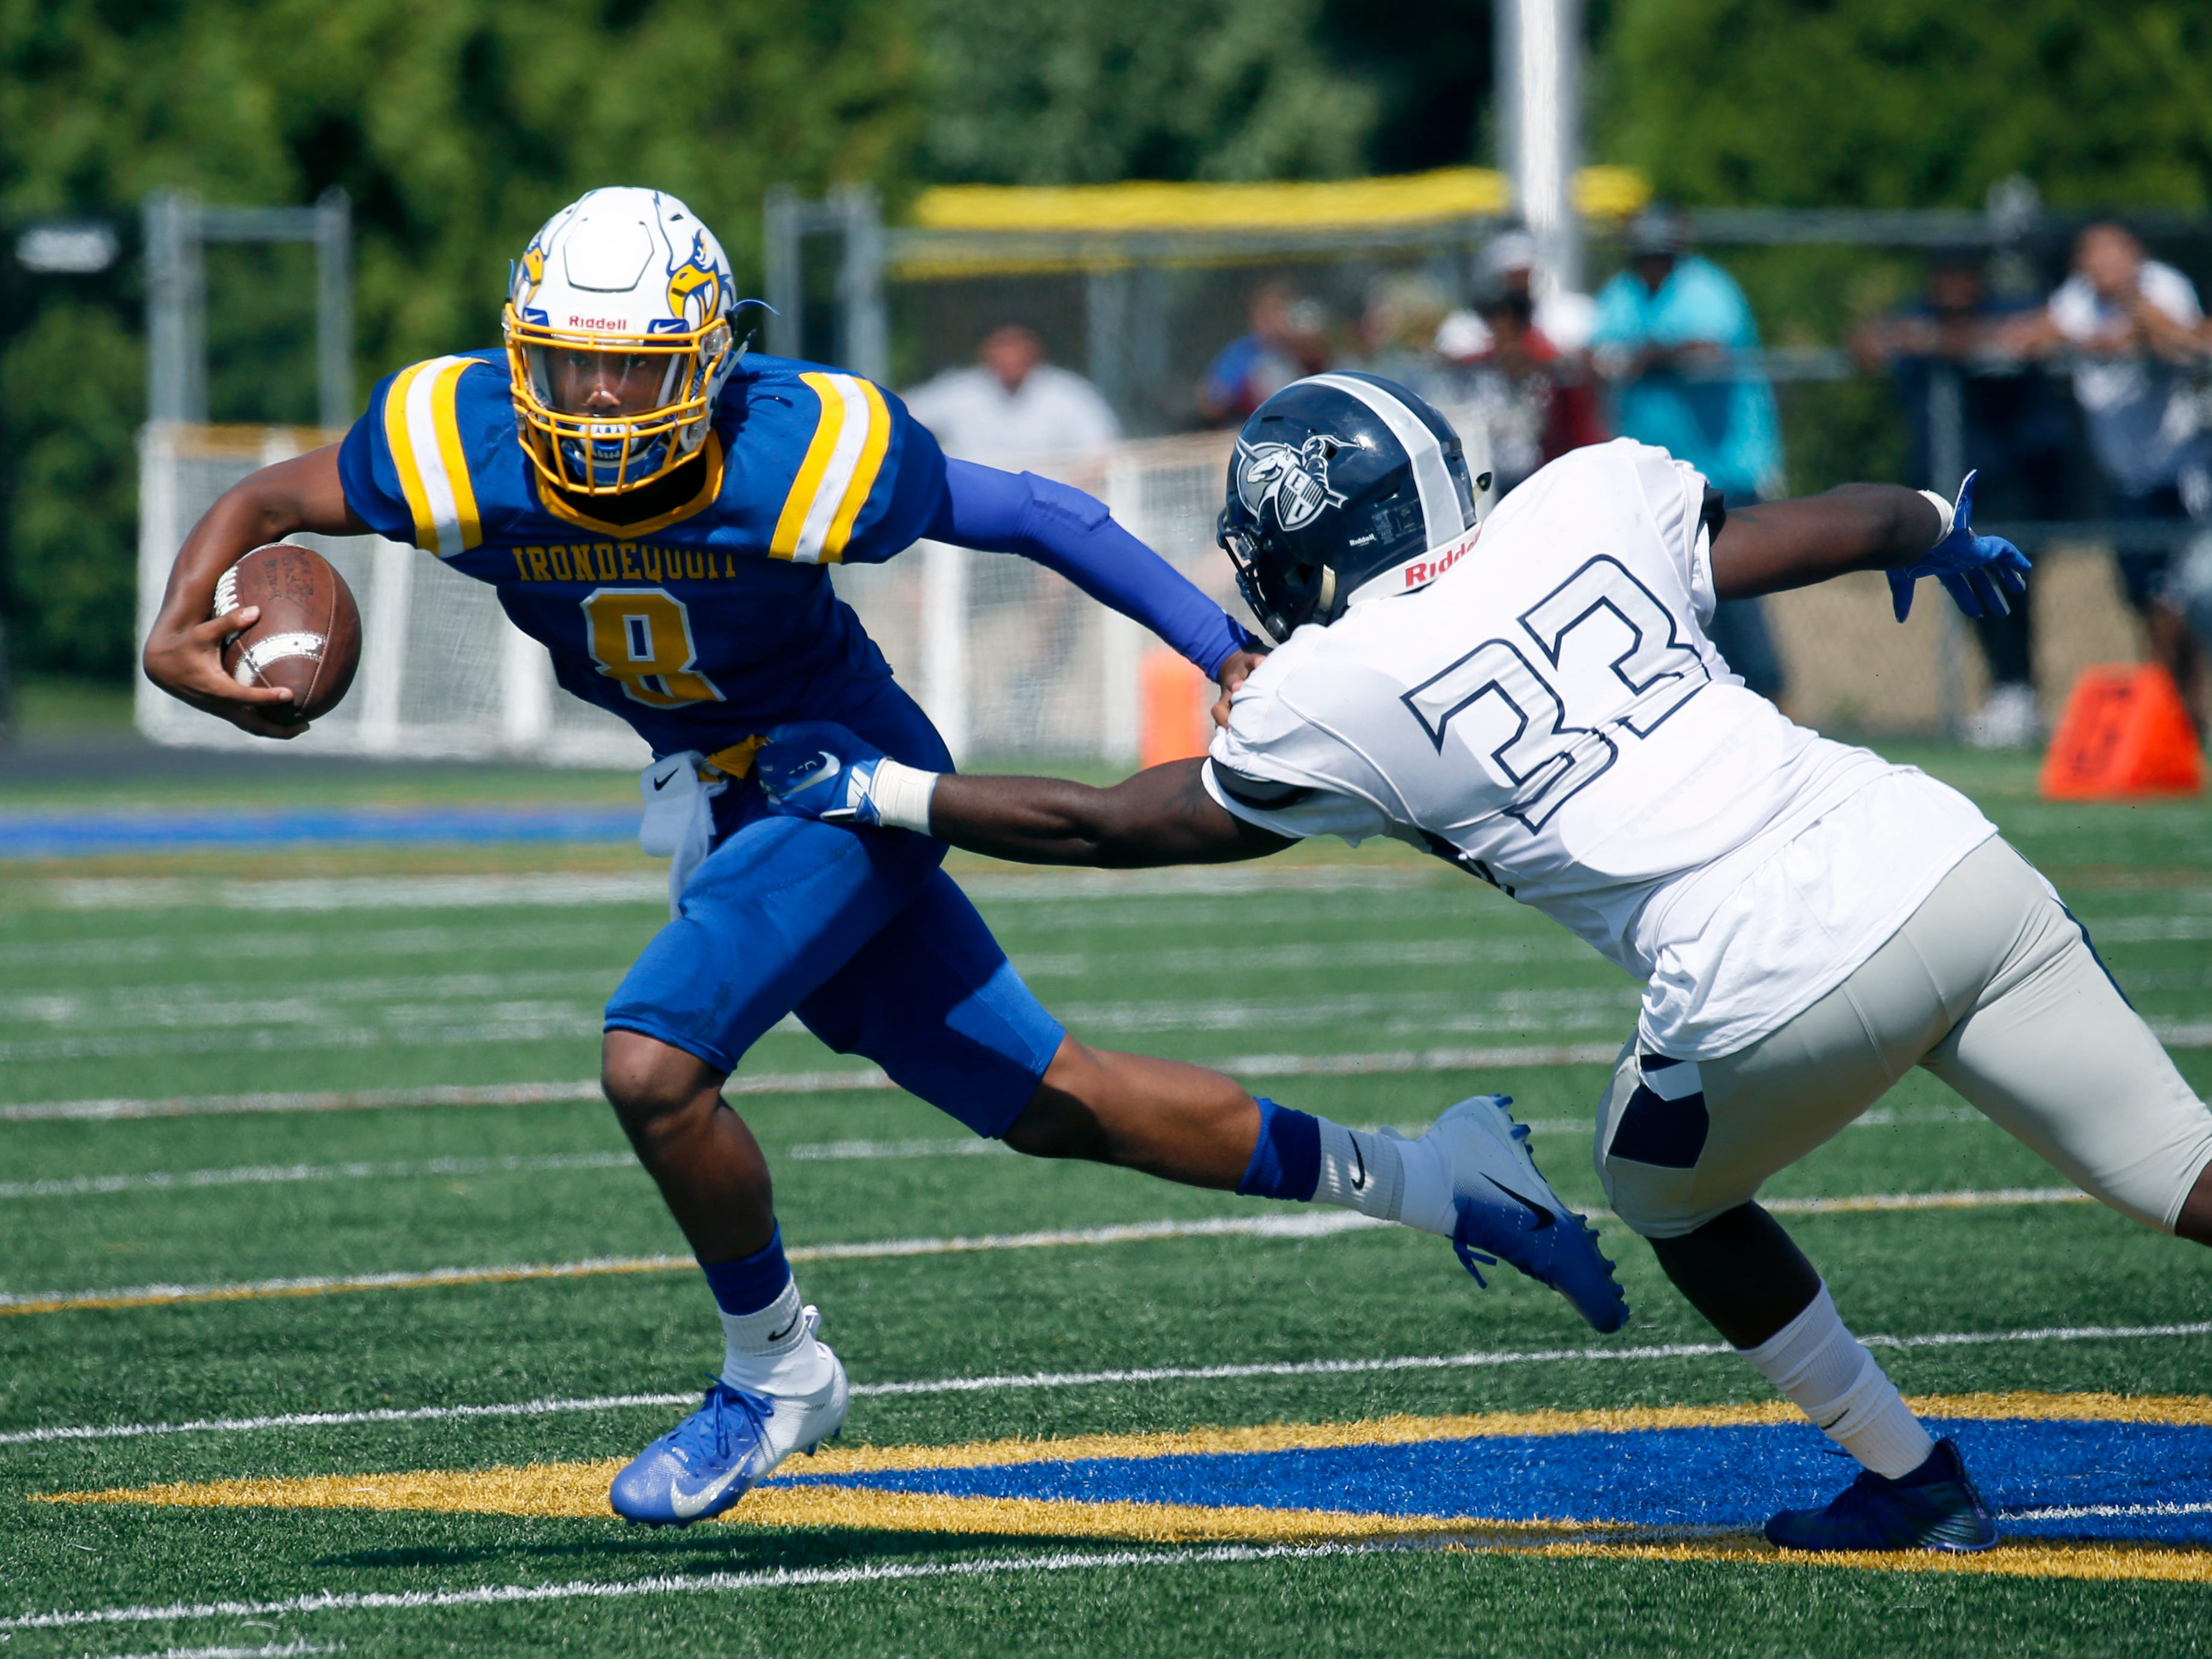 Irondequoit's Freddy June Jr. runs away from Eastridge's Aries Holt in the second quarter at Irondequoit High School.